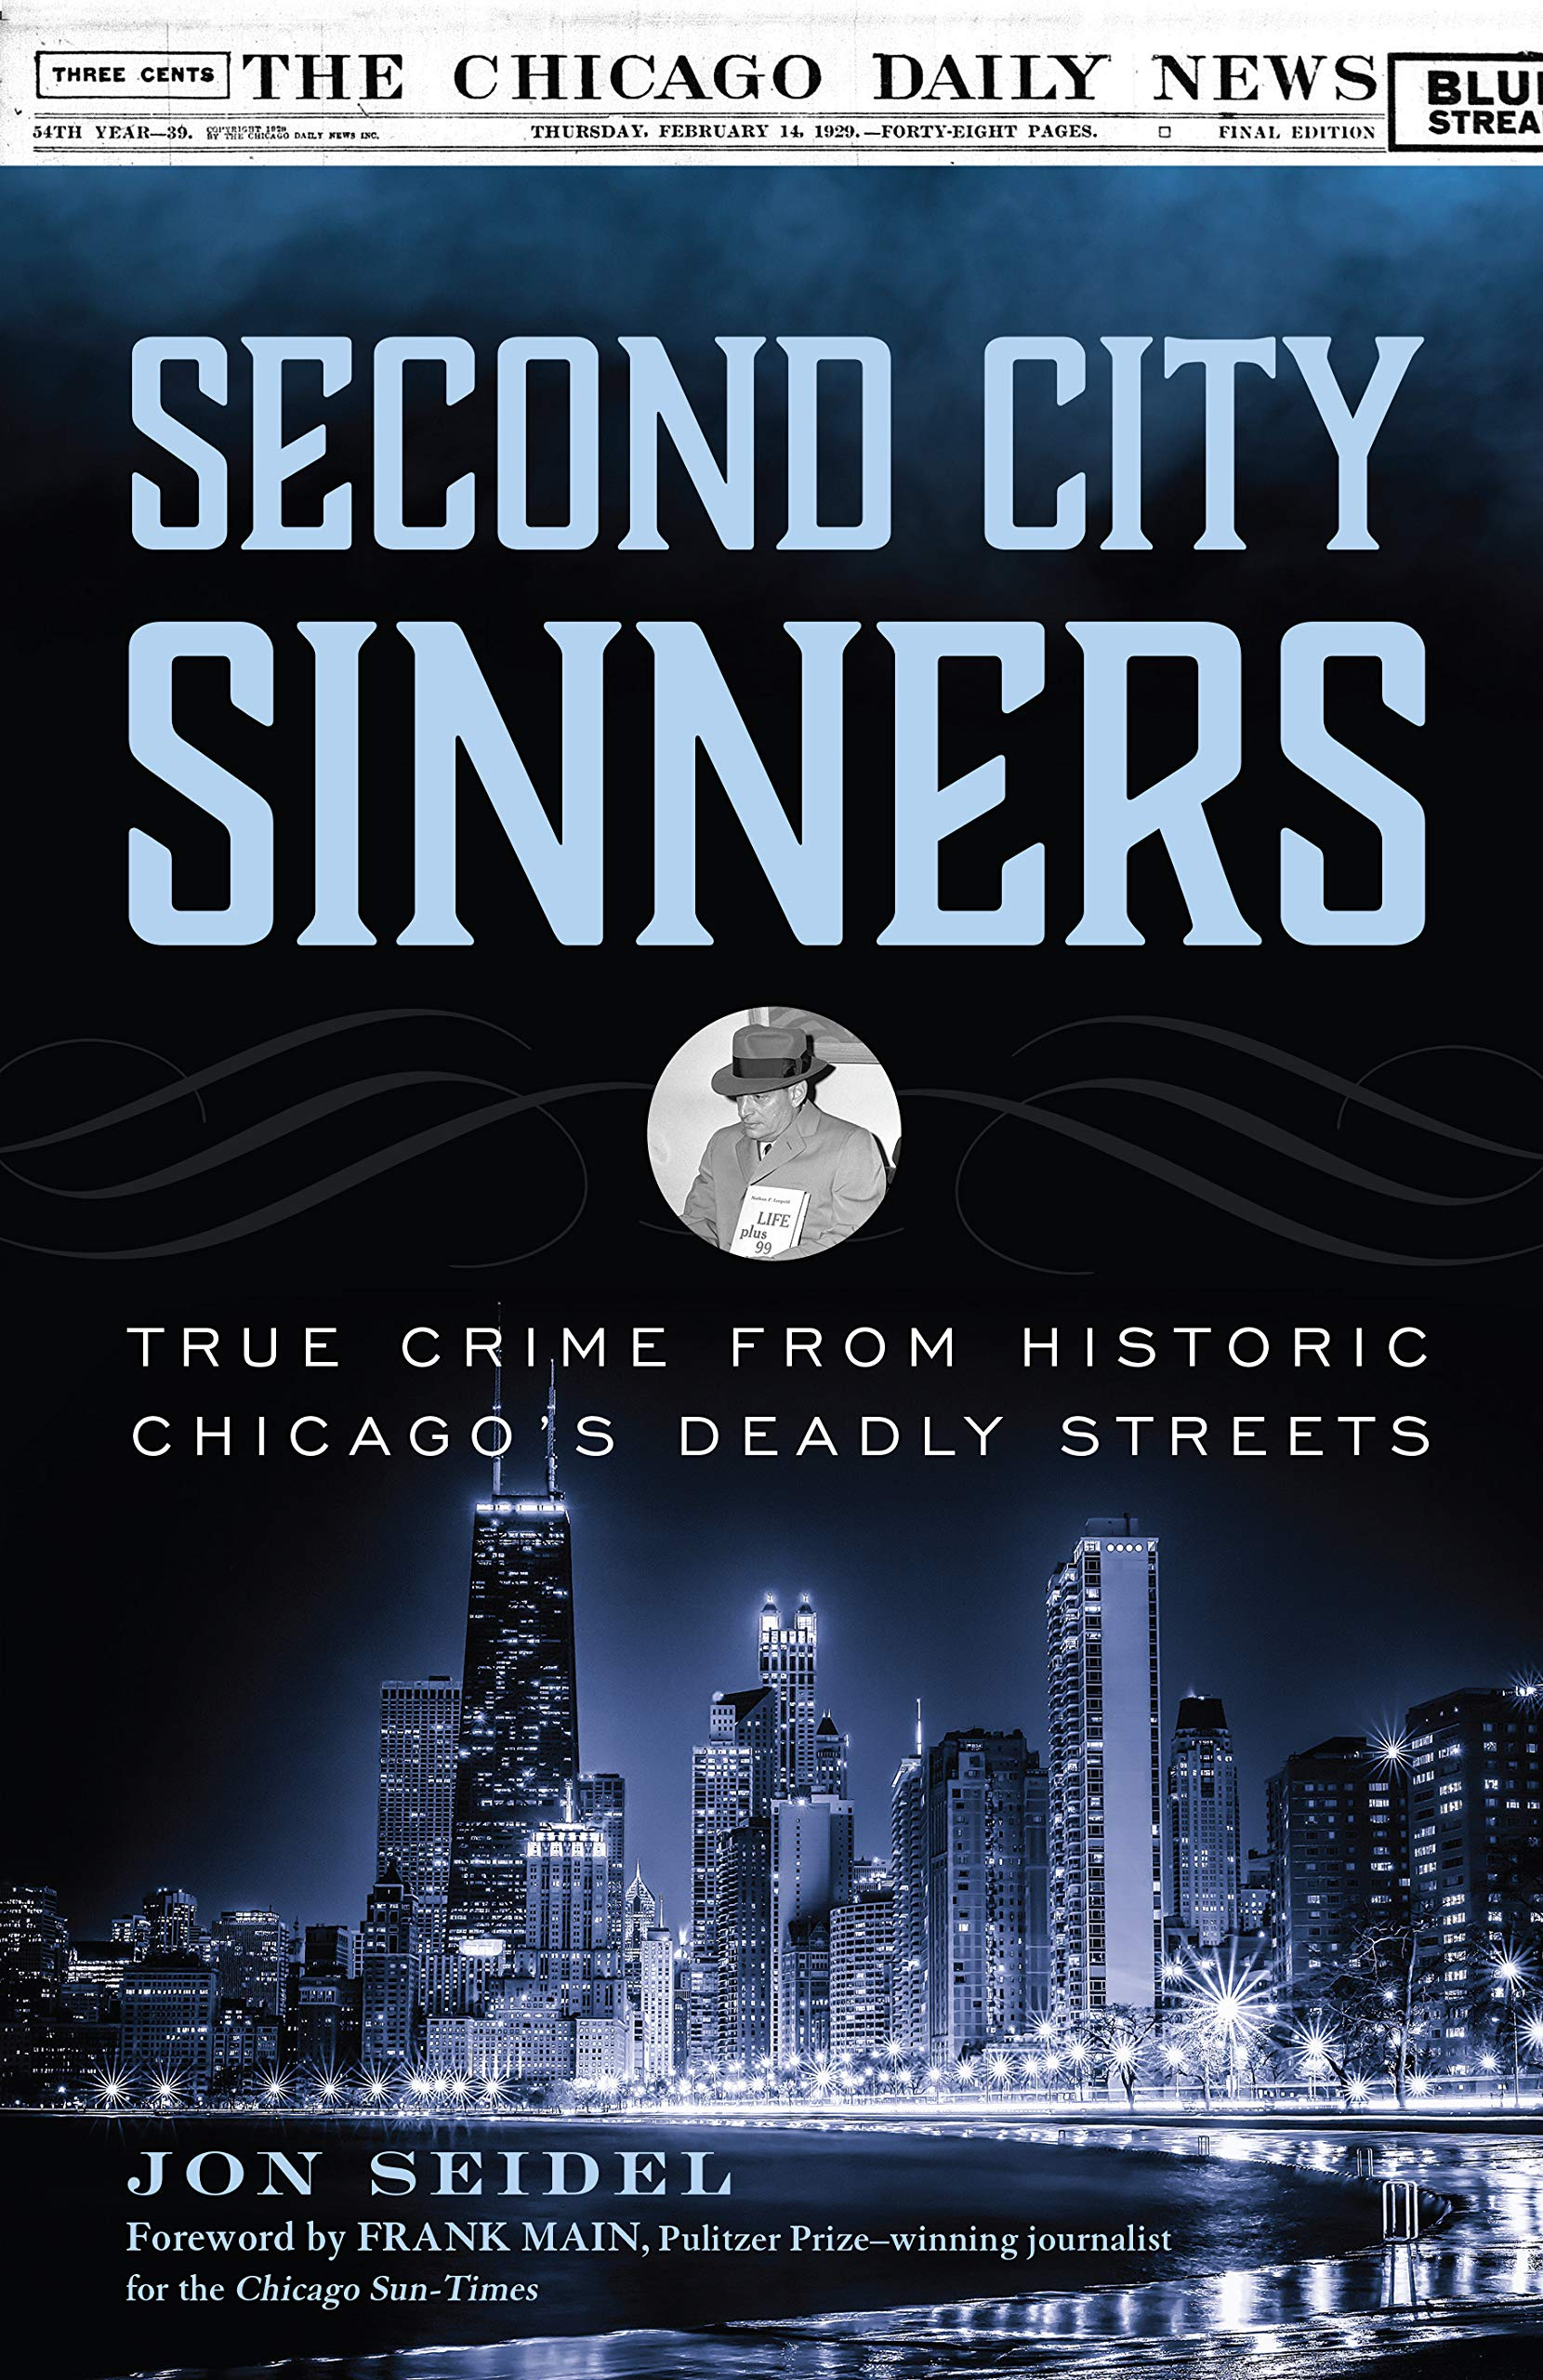 Second City Sinners: True Crime from Historic Chicago's Deadly Streets by Lyons Press